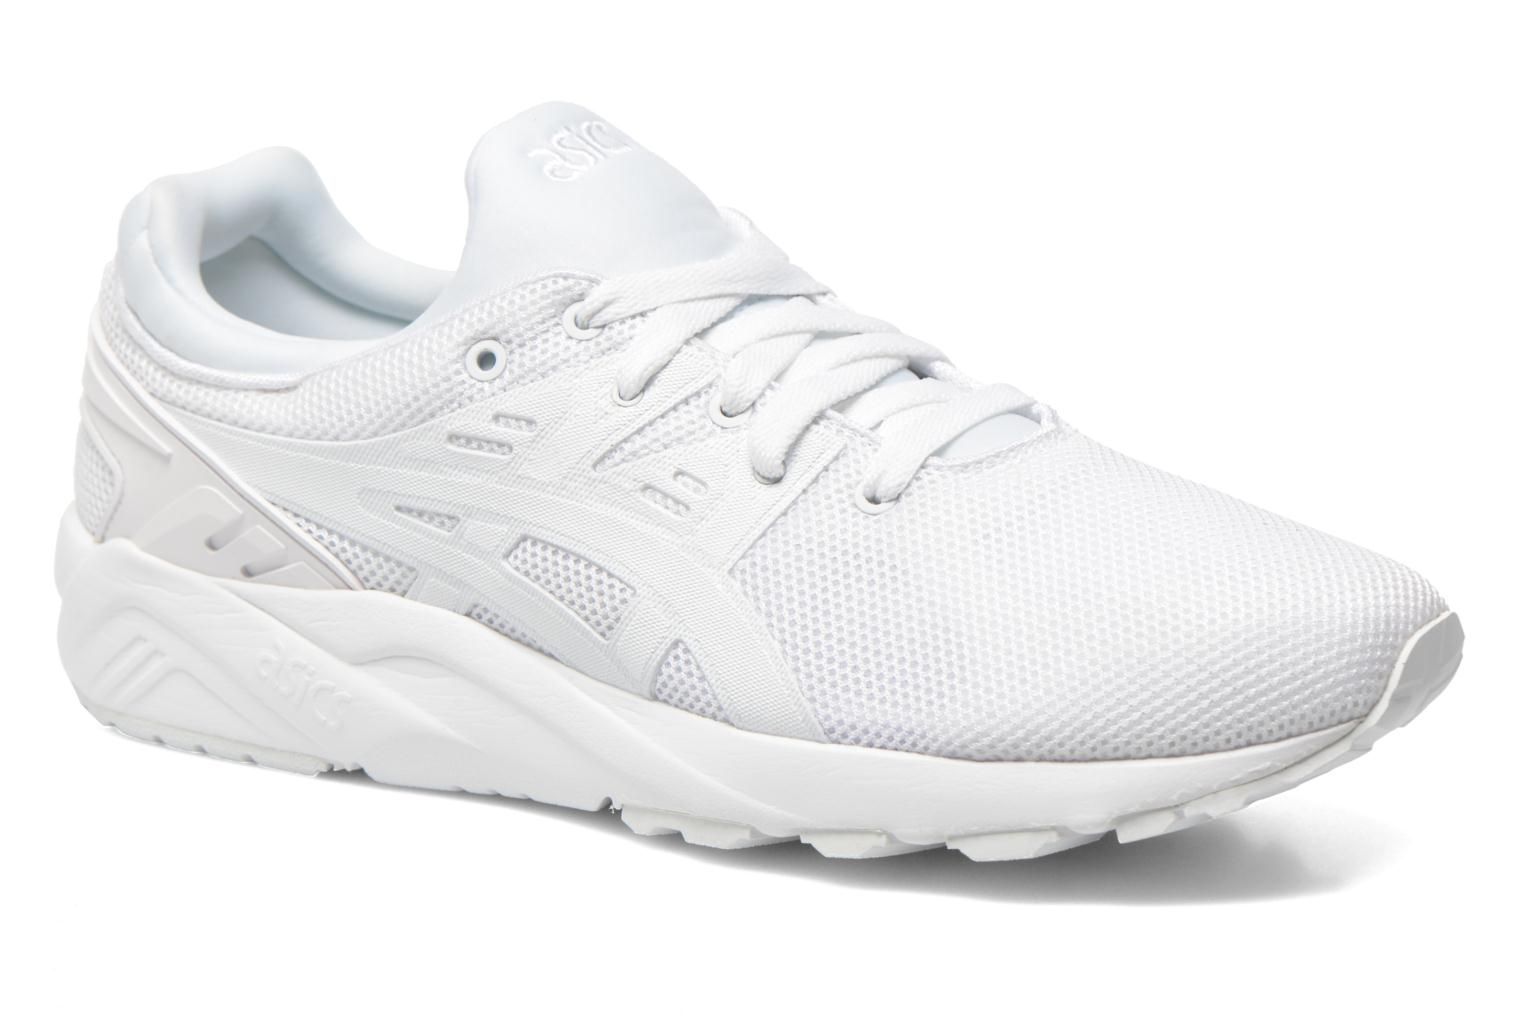 Gel-Kayano Trainer Evo White1/White